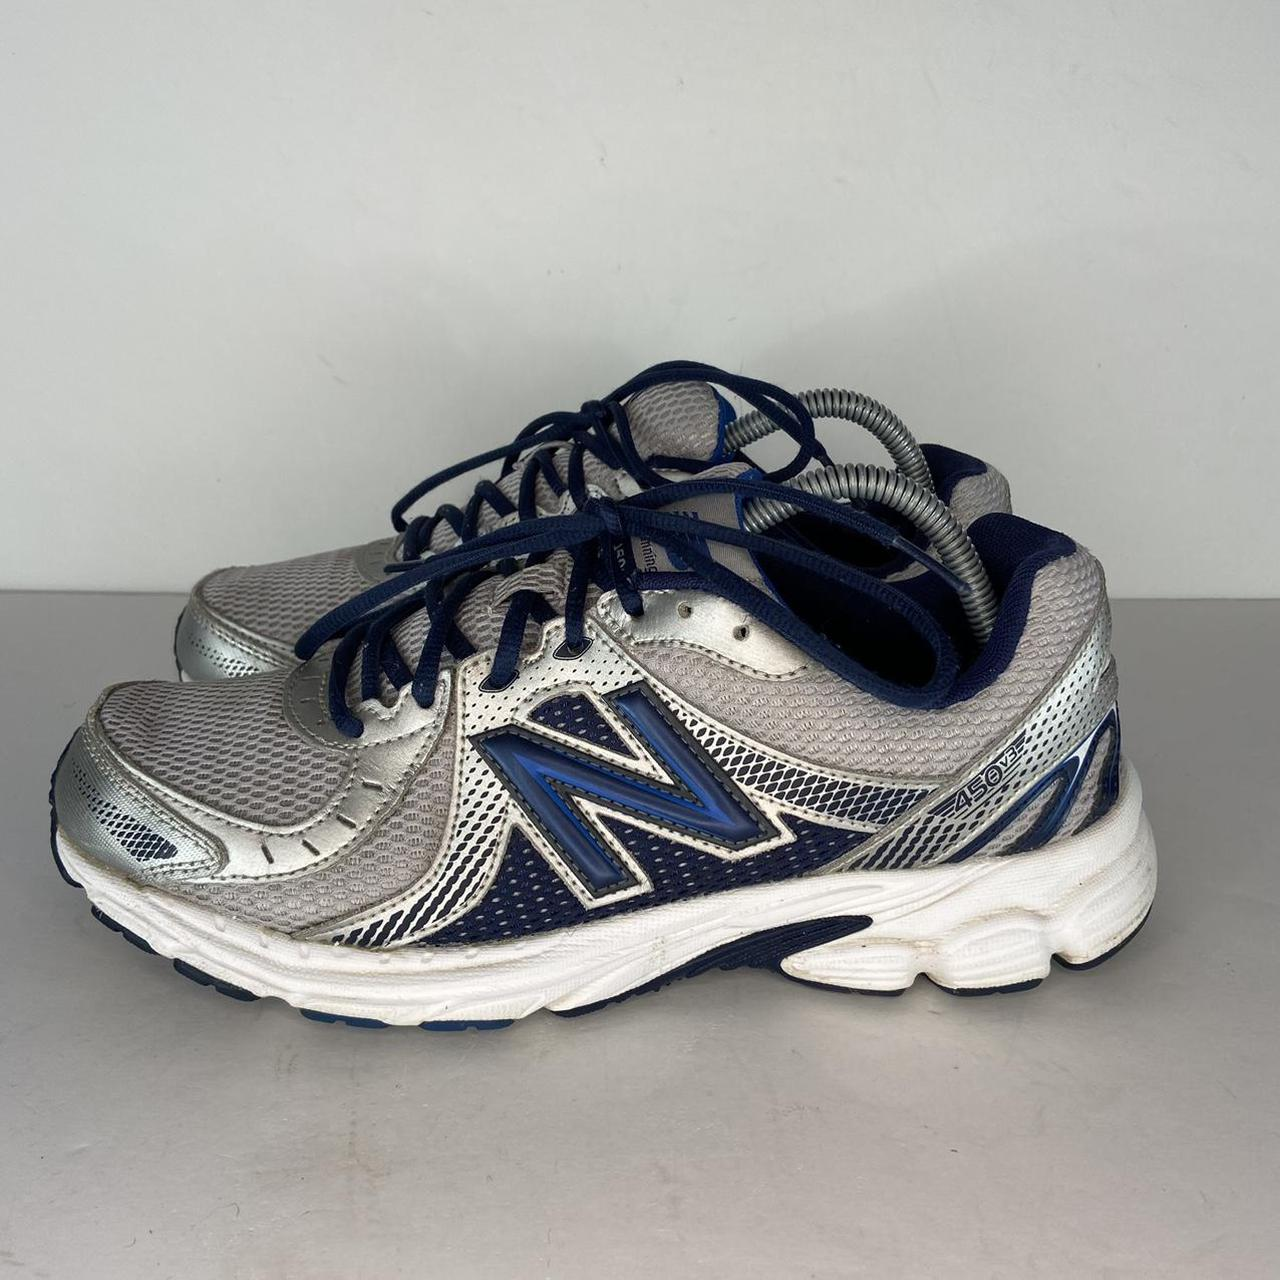 Product Image 1 - New balance 450V3 sneakers. Men's